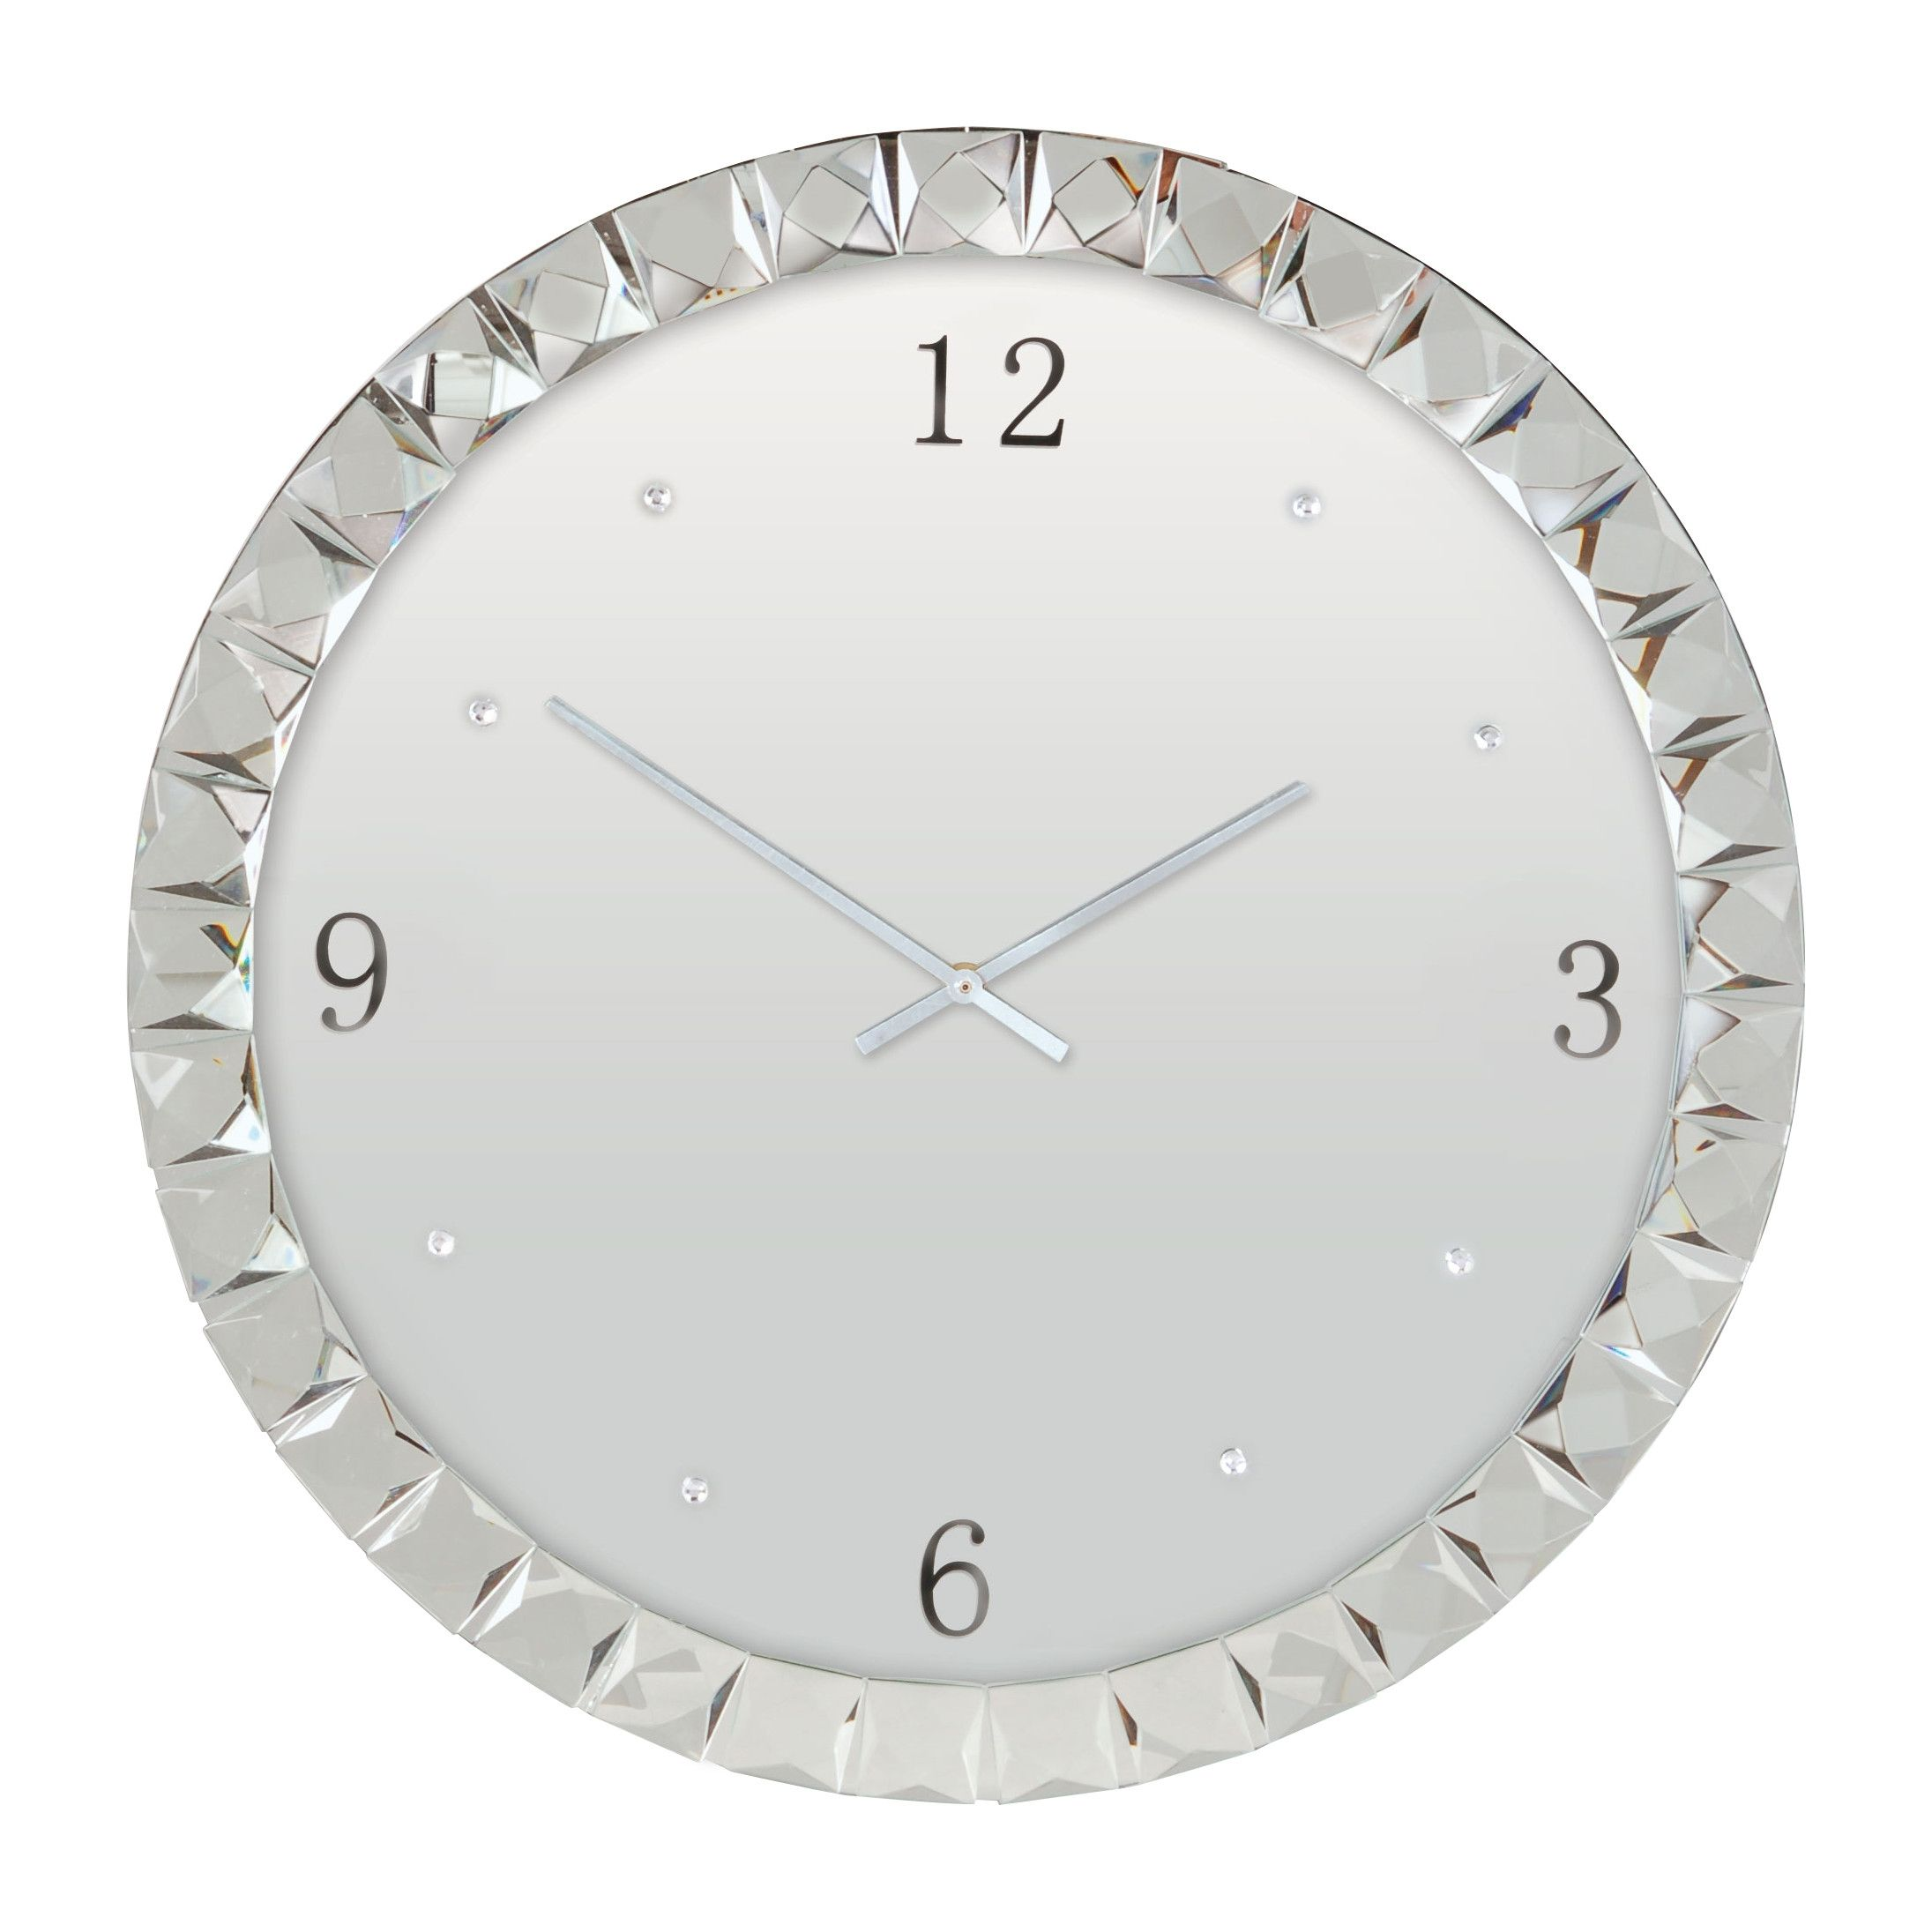 Wall Clock Index Mirror Silver Glass | http://drrw.us | Pinterest ...